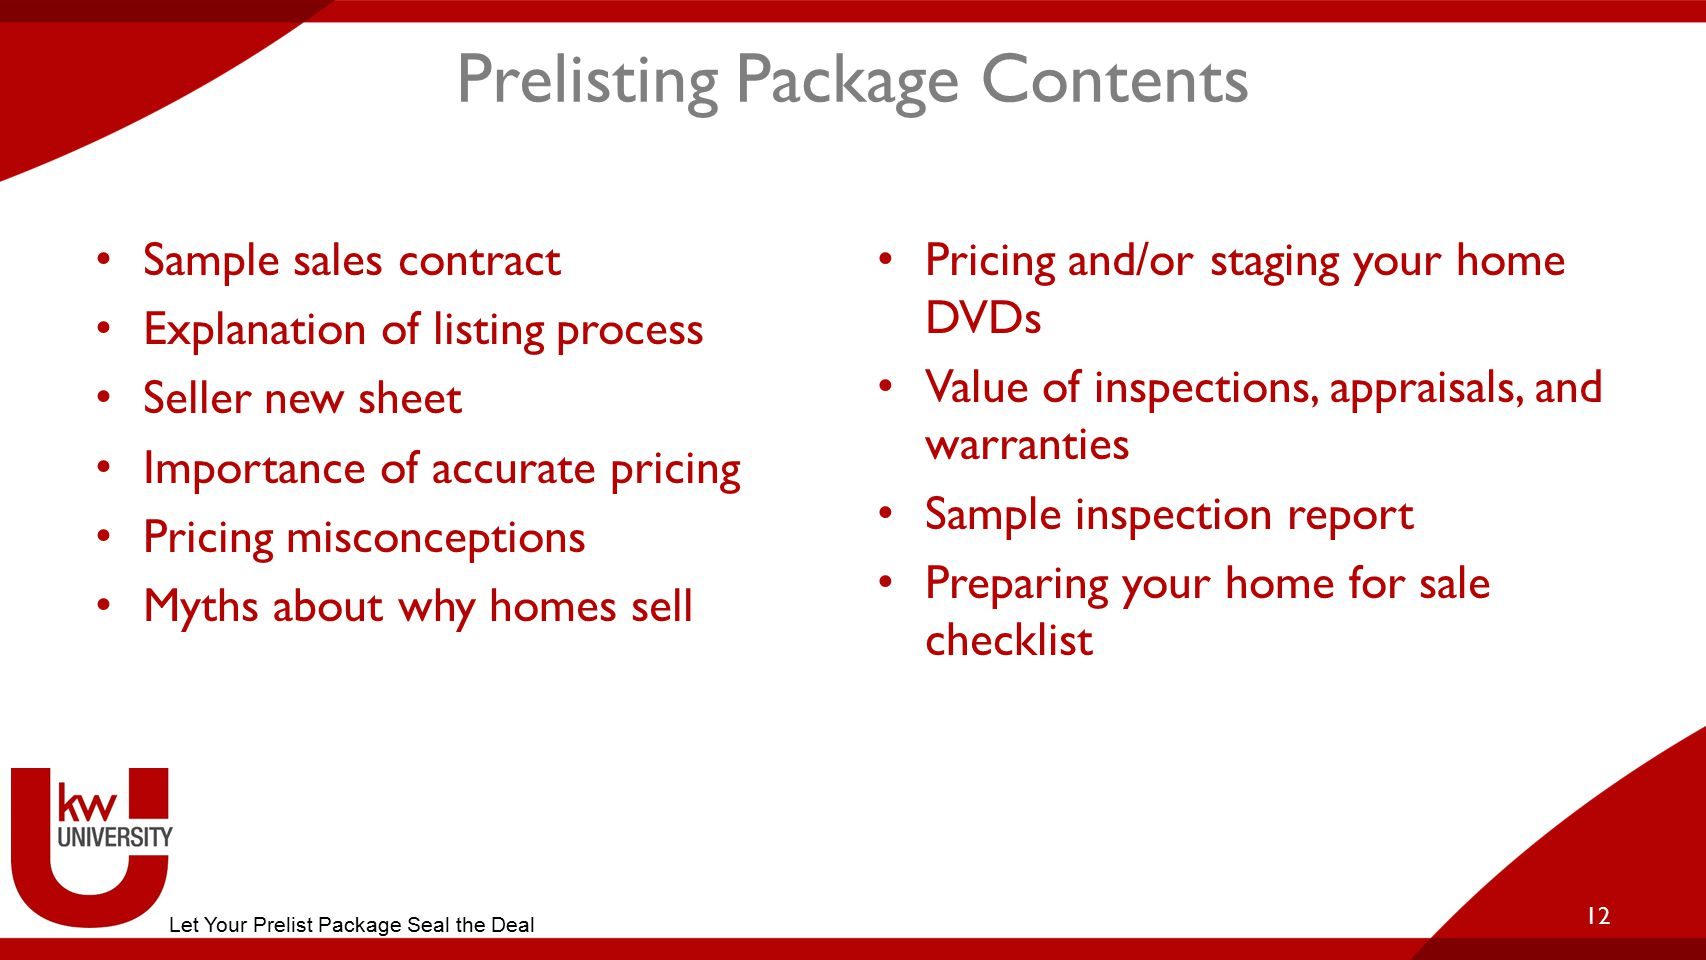 Prelisting Package Contents Sample sales contract Explanation of listing process Seller new sheet Importance of accurate pricing Pricing misconceptions Myths about why homes sell Pricing and/or staging your home DVDs Value of inspections, appraisals, and warranties Sample inspection report Preparing your home for sale checklist 12 Let Your Prelist Package Seal the Deal